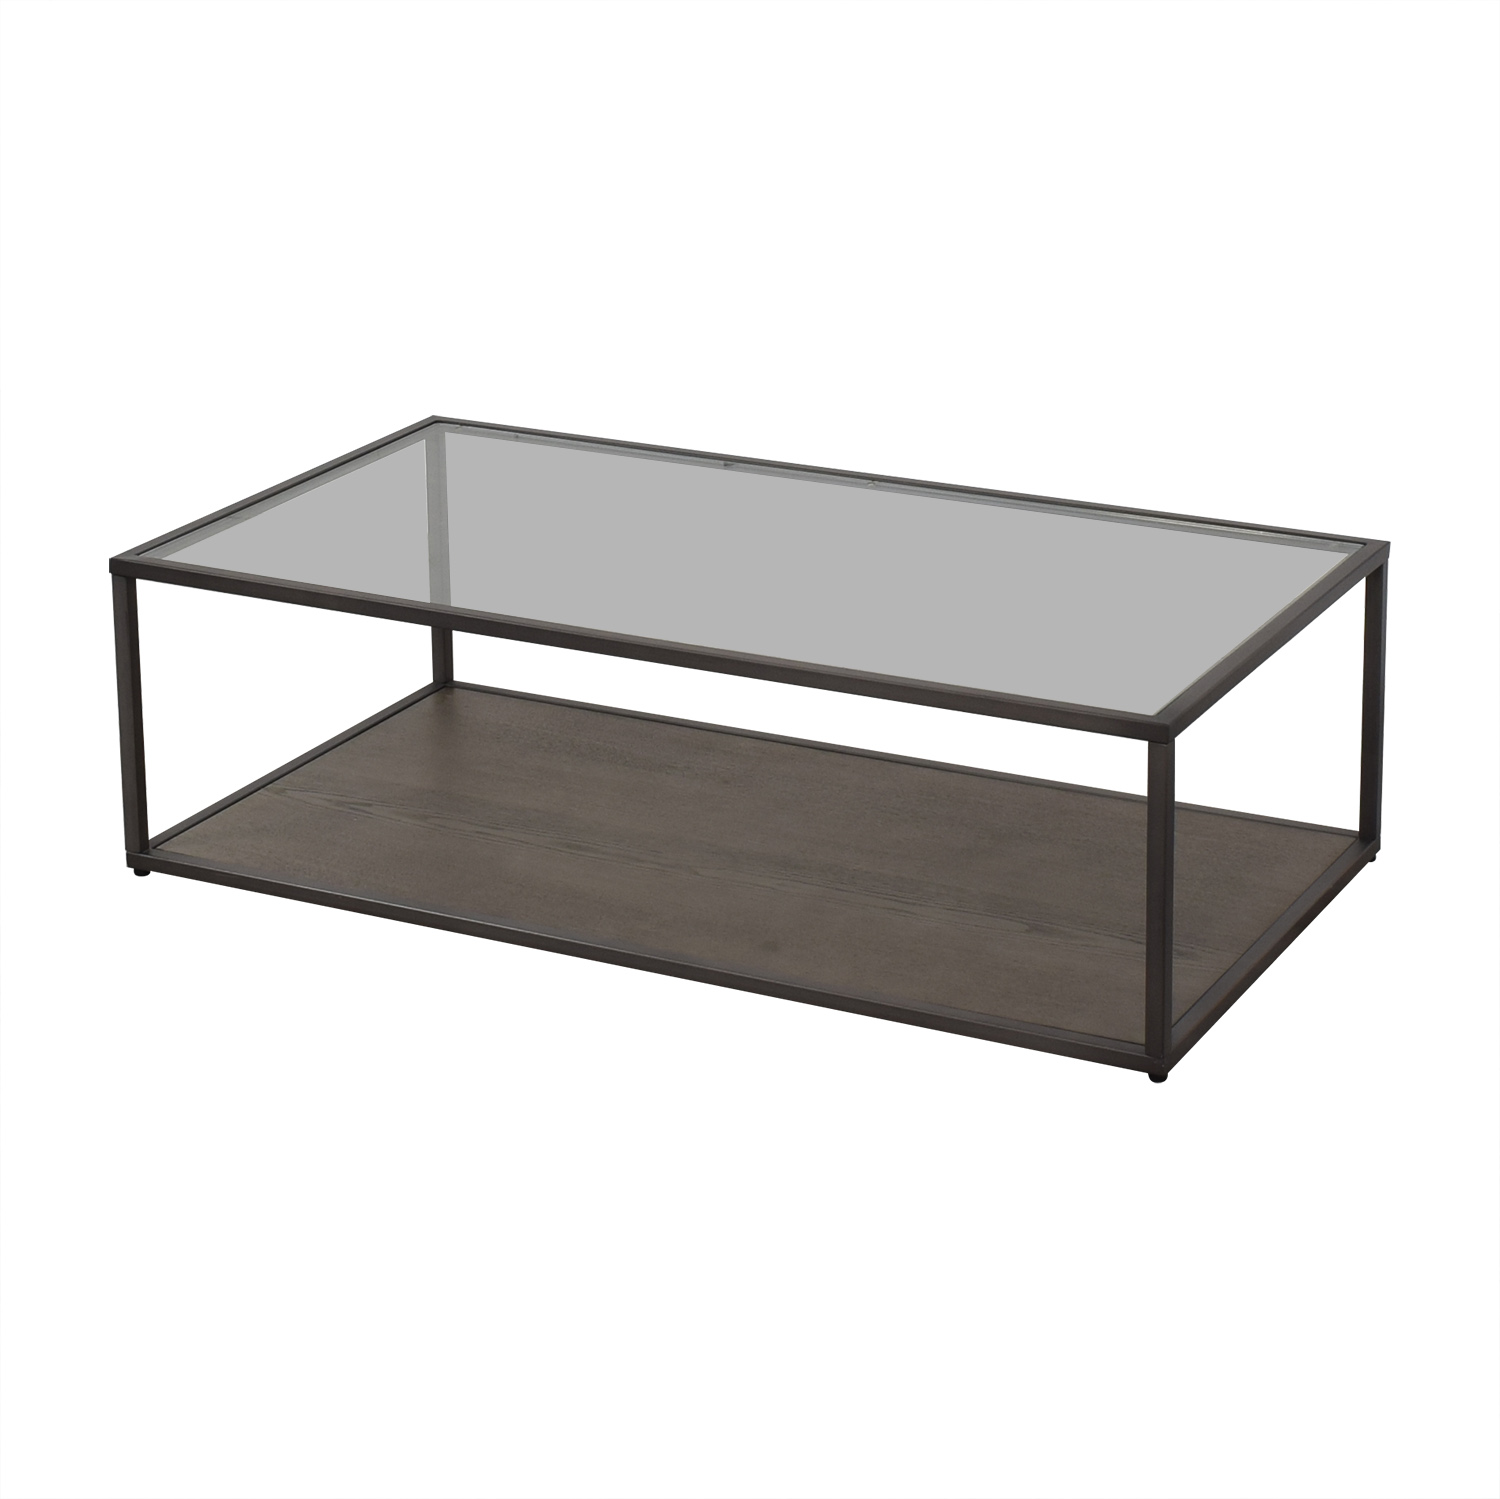 33 off crate barrel crate barrel switch coffee table tables